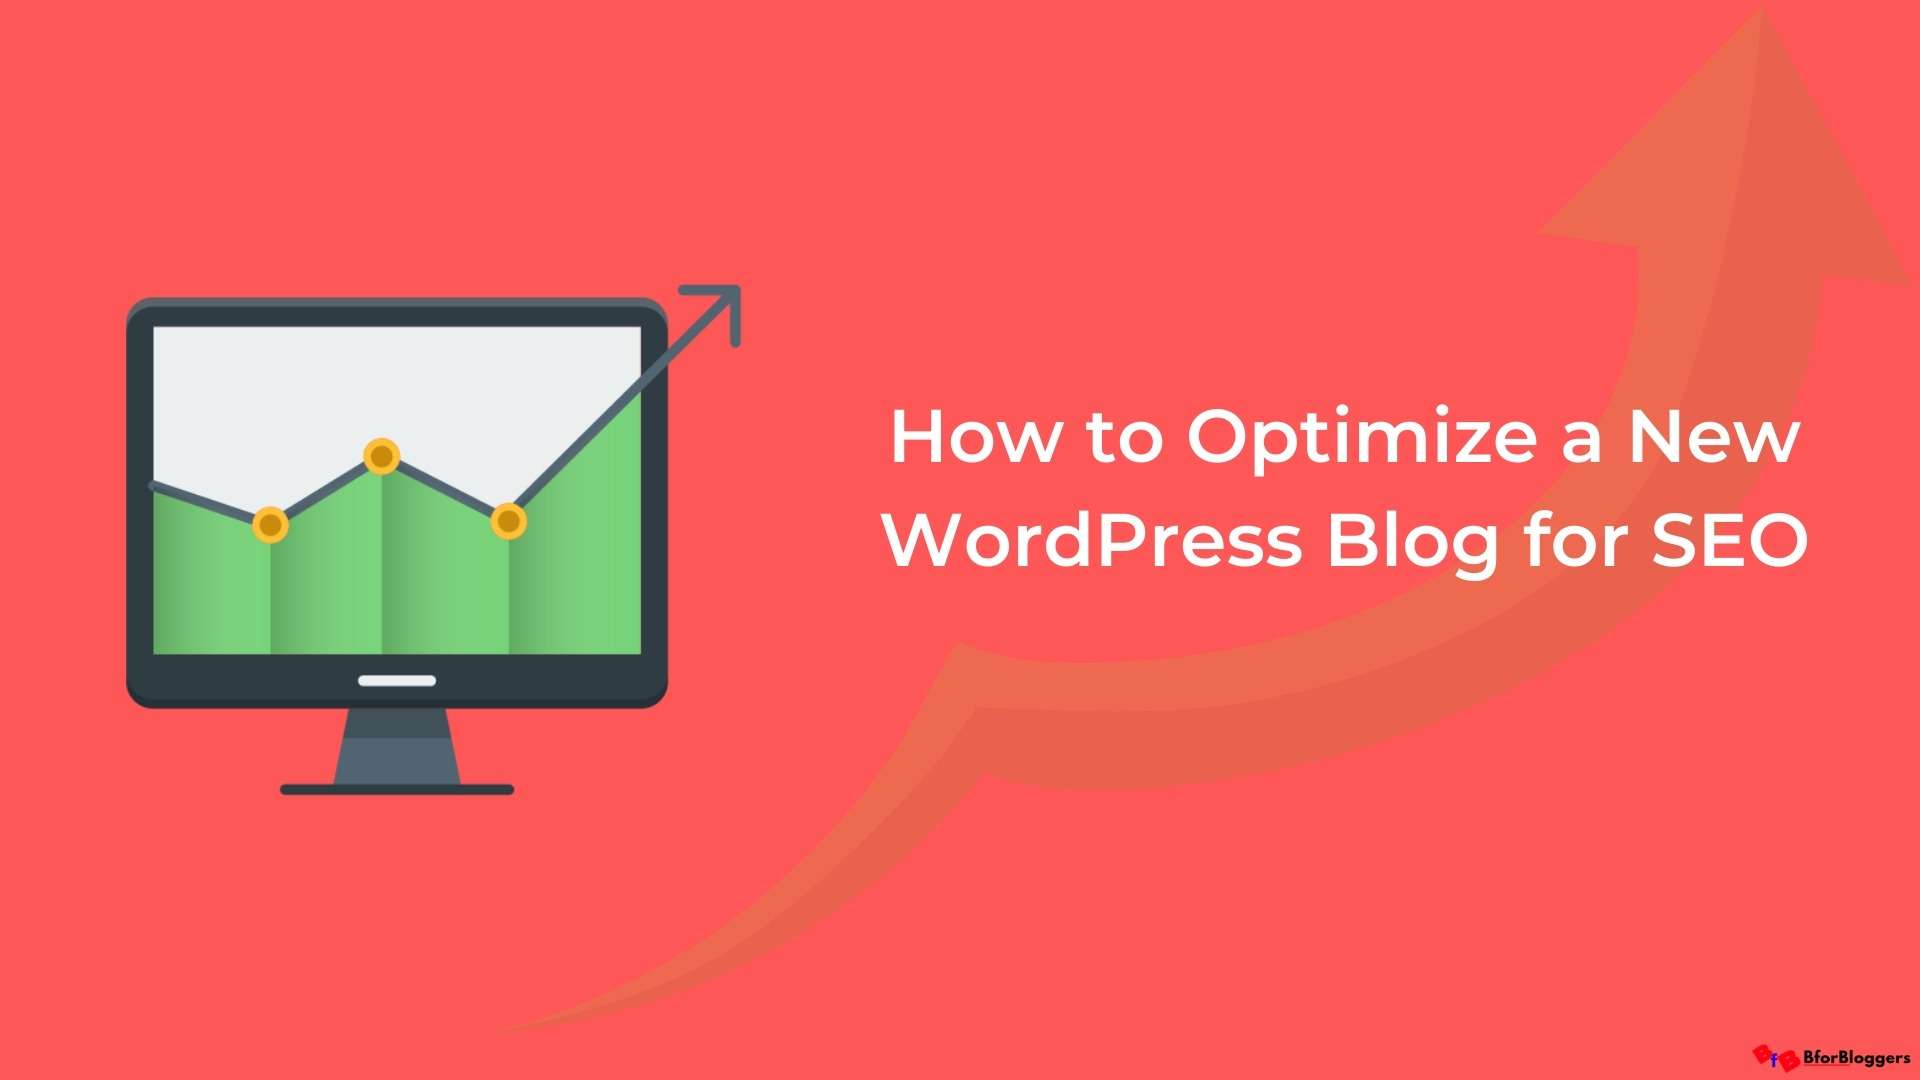 How-to-Optimize-a-New-WordPress-Blog-for-SEO